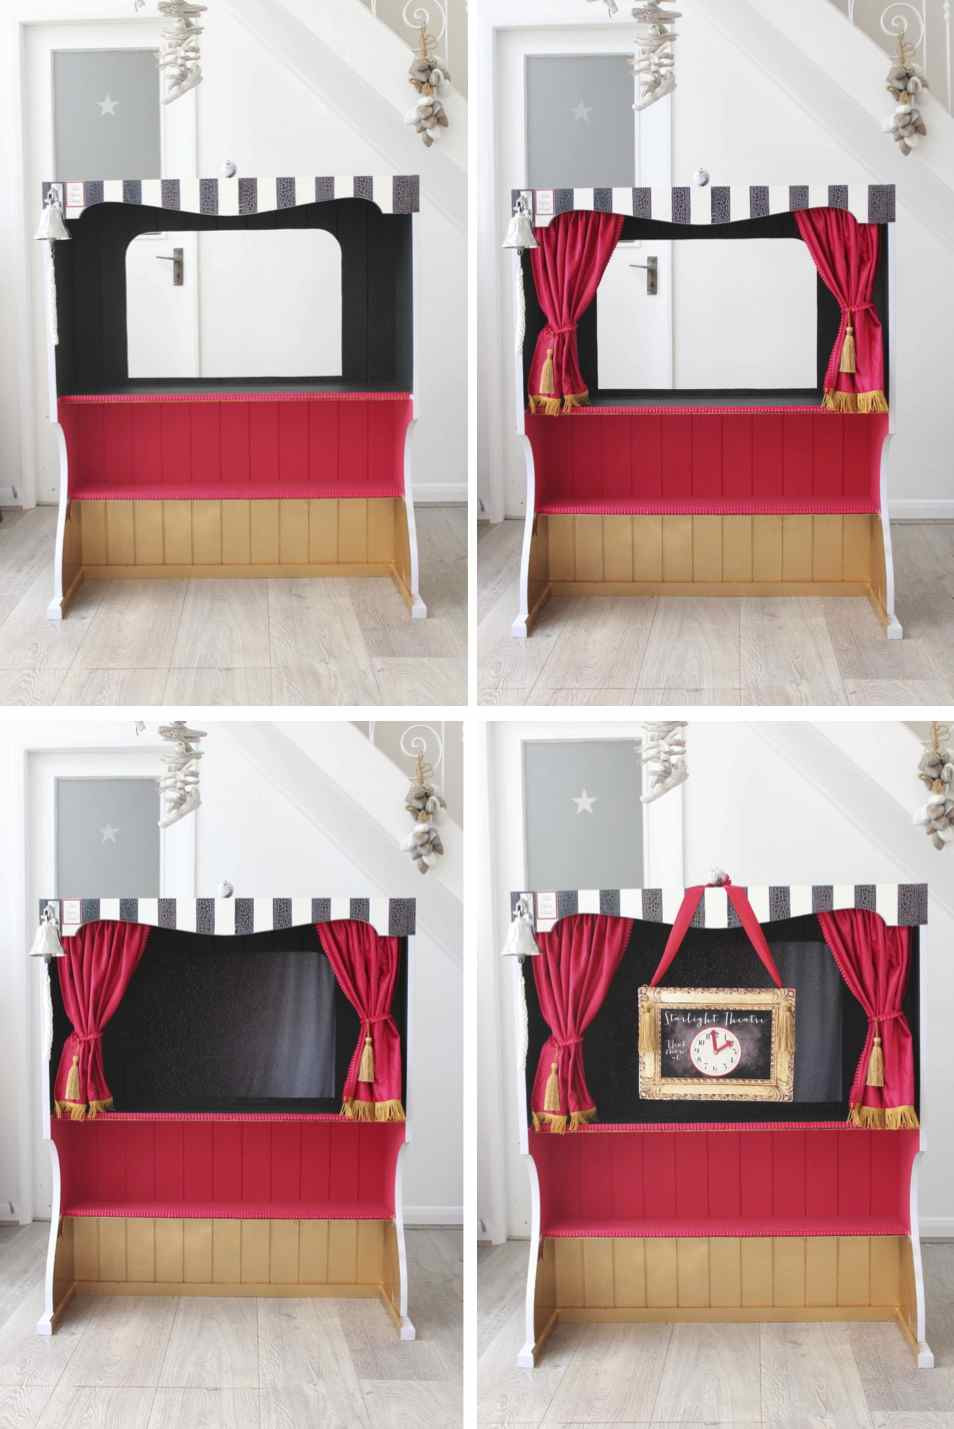 Best ideas about DIY Puppet Theater . Save or Pin puppet show Now.